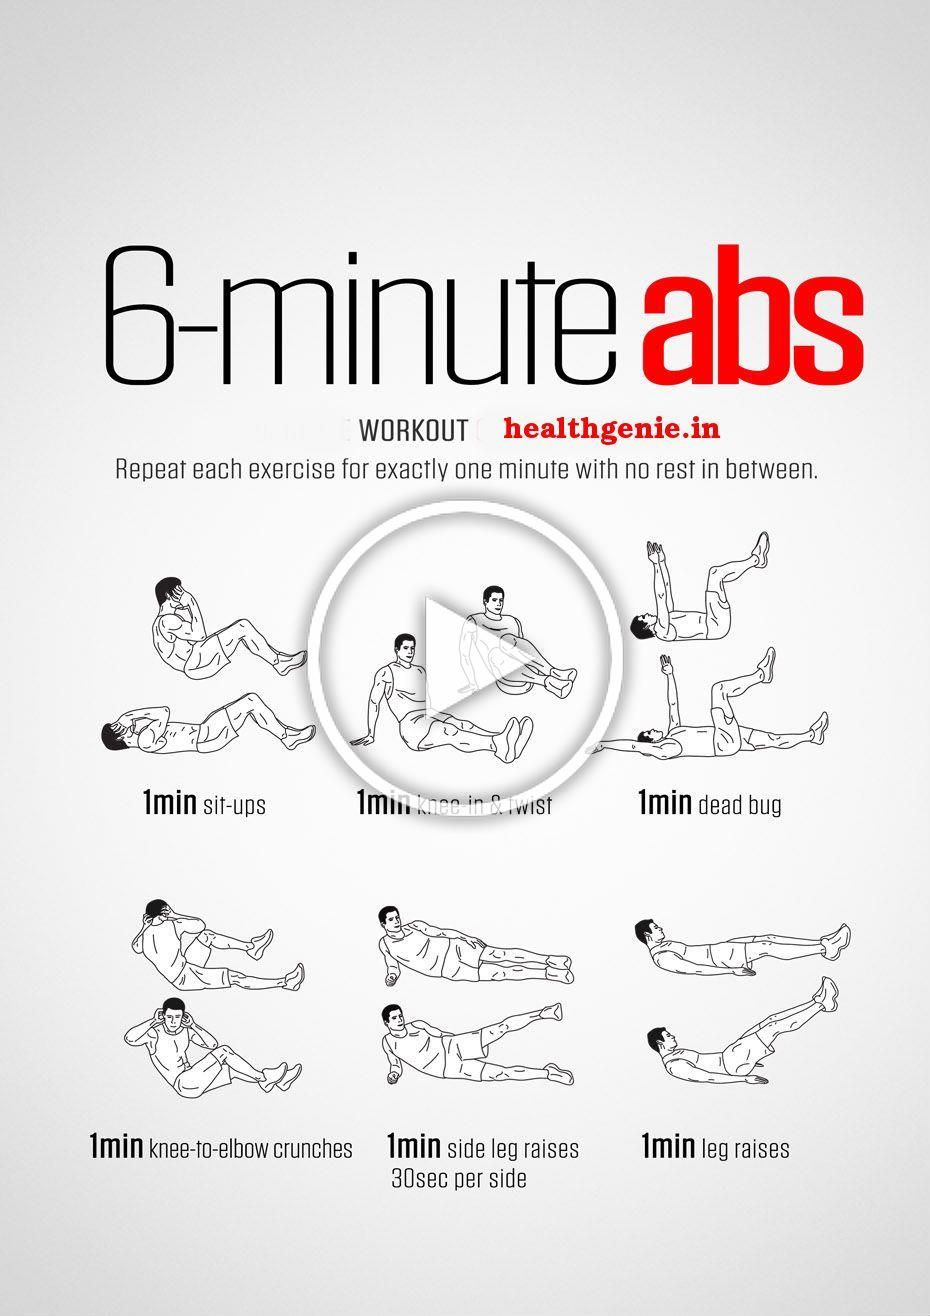 6 Minutes #Abs #Workout #absworkout #flatbelly #exercise #workout #fitness #bodybuilding #musclebuil...